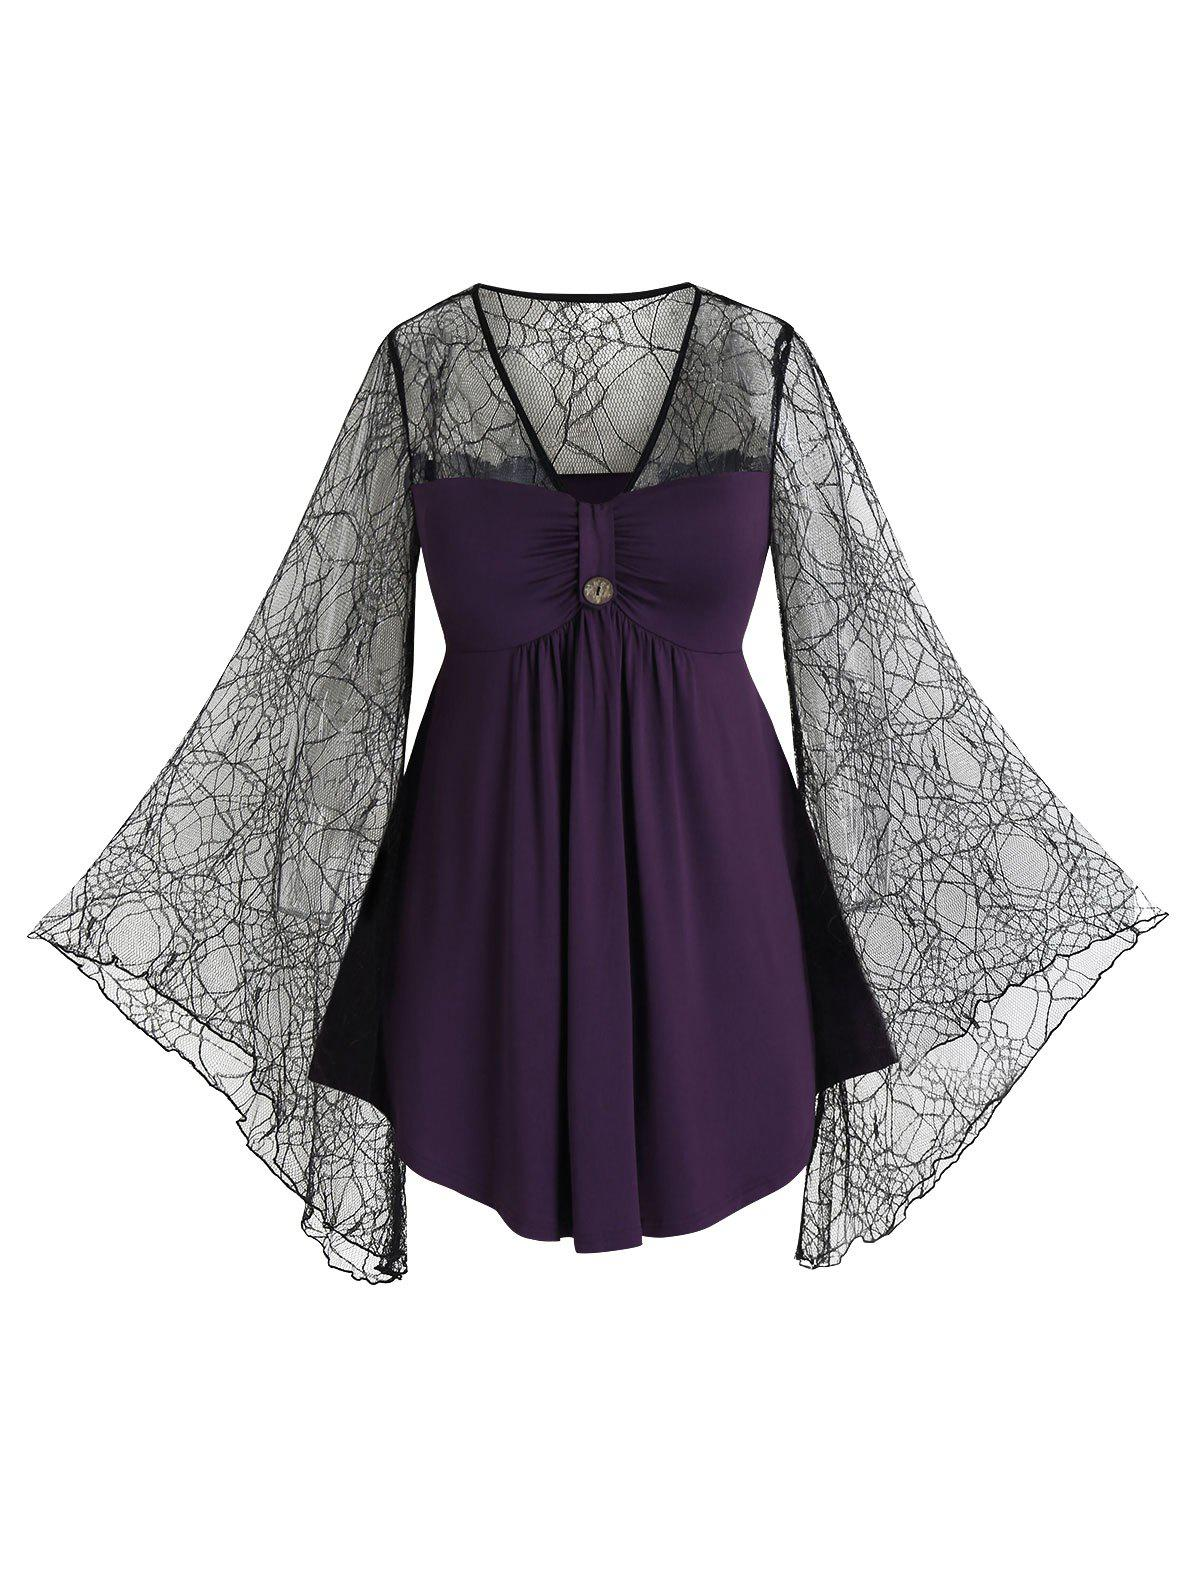 Plus Size Lace Spider Web Sheer Bell Sleeve Tee - PURPLE IRIS 2X